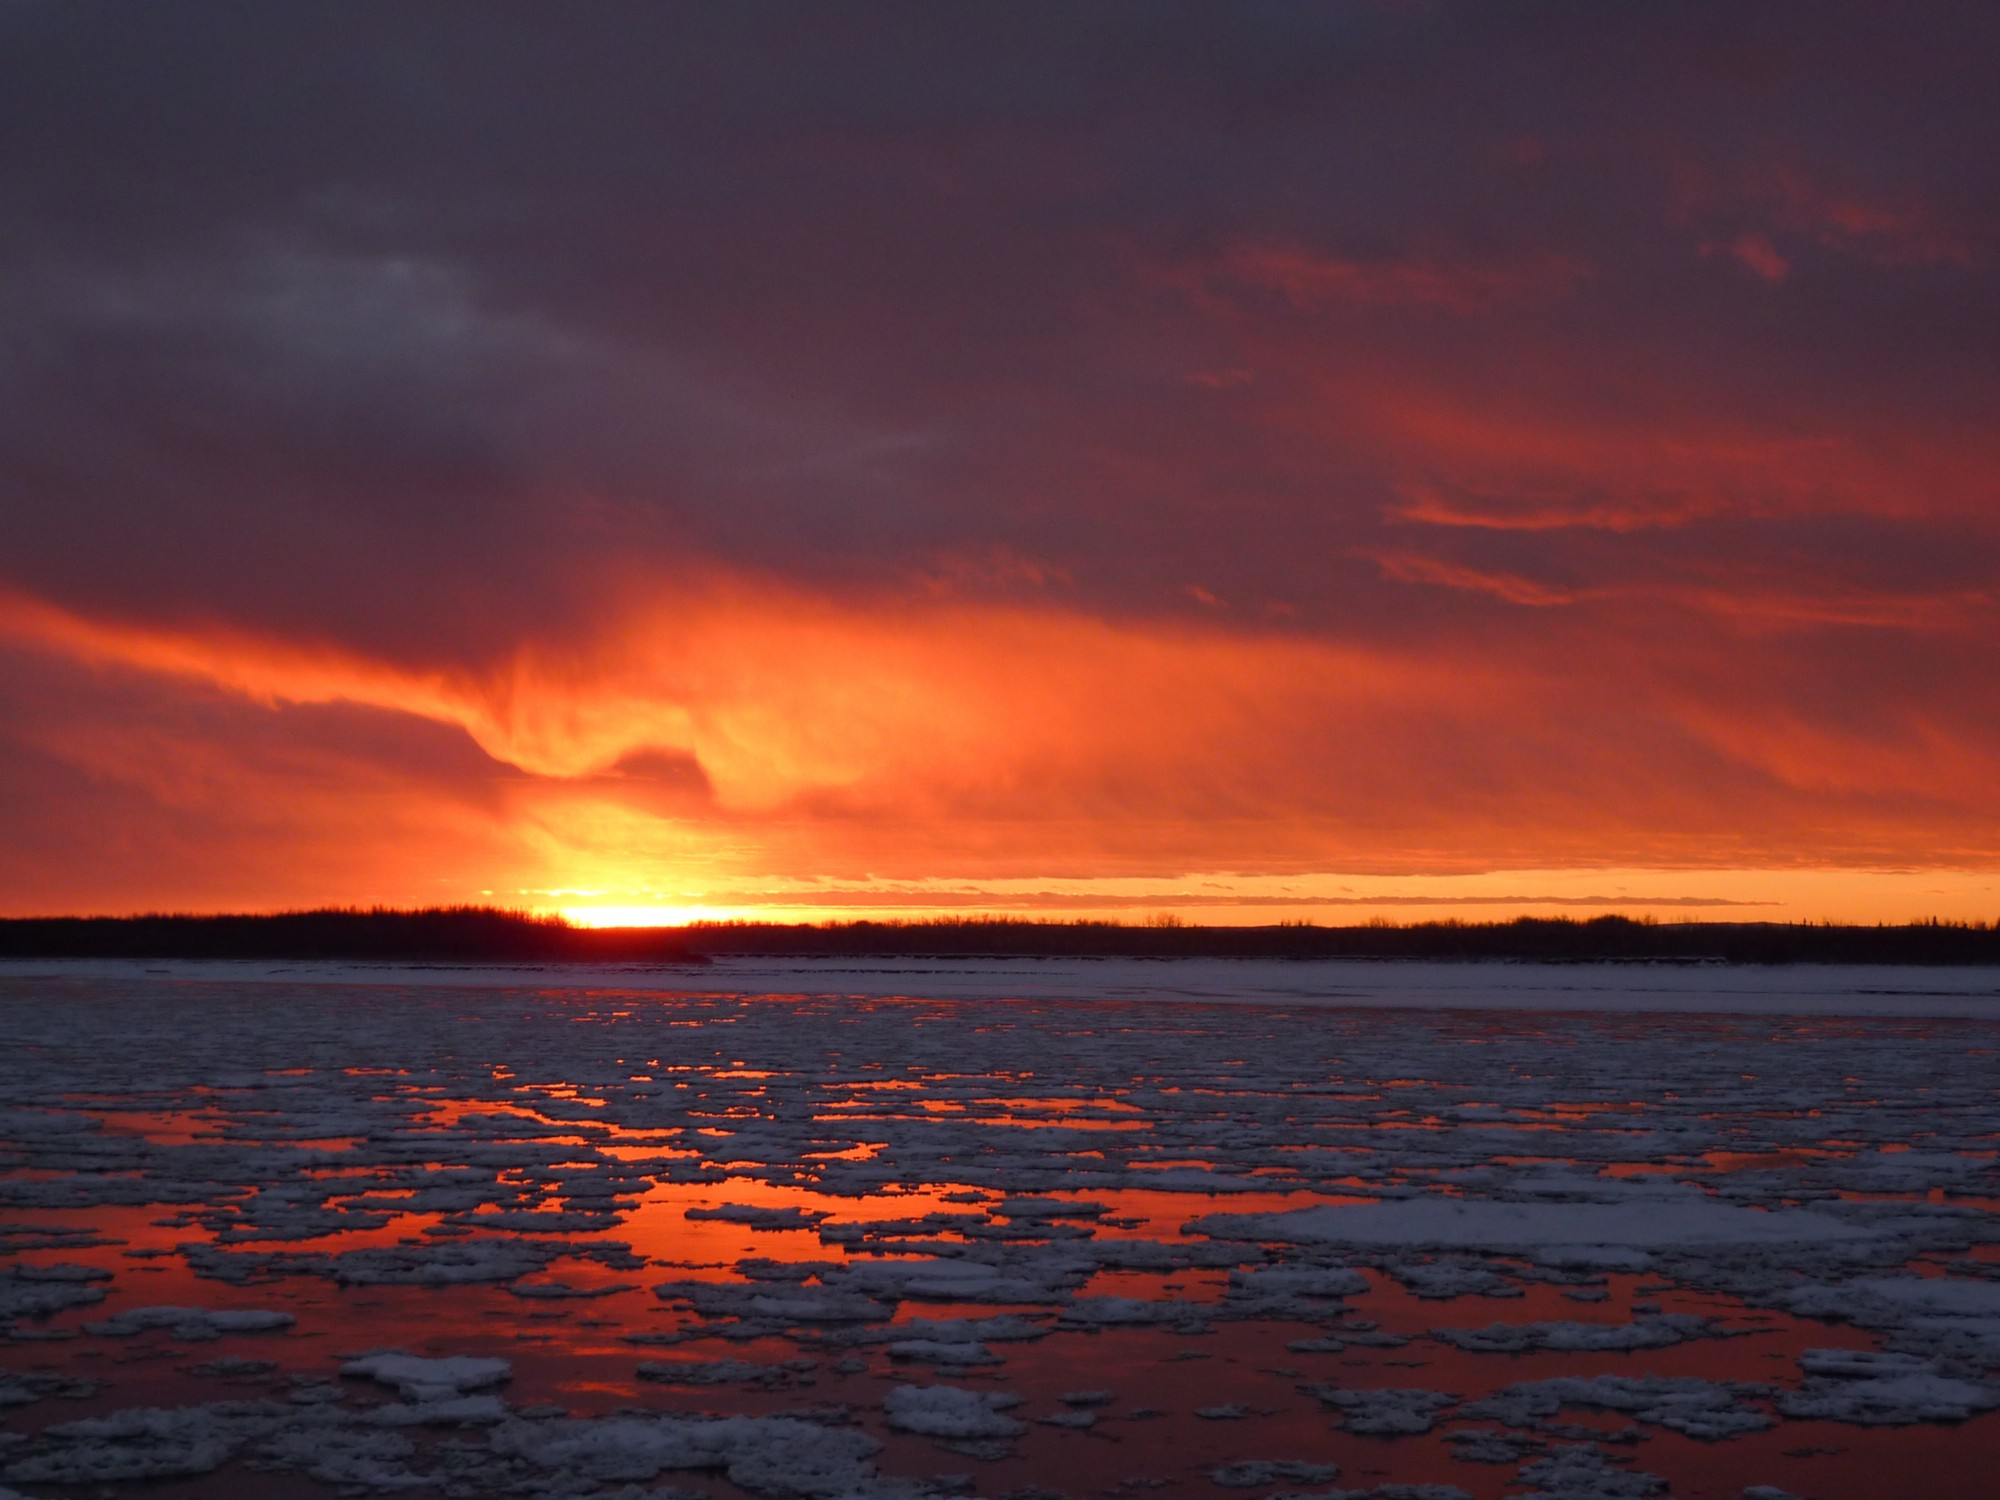 low sun over icy water